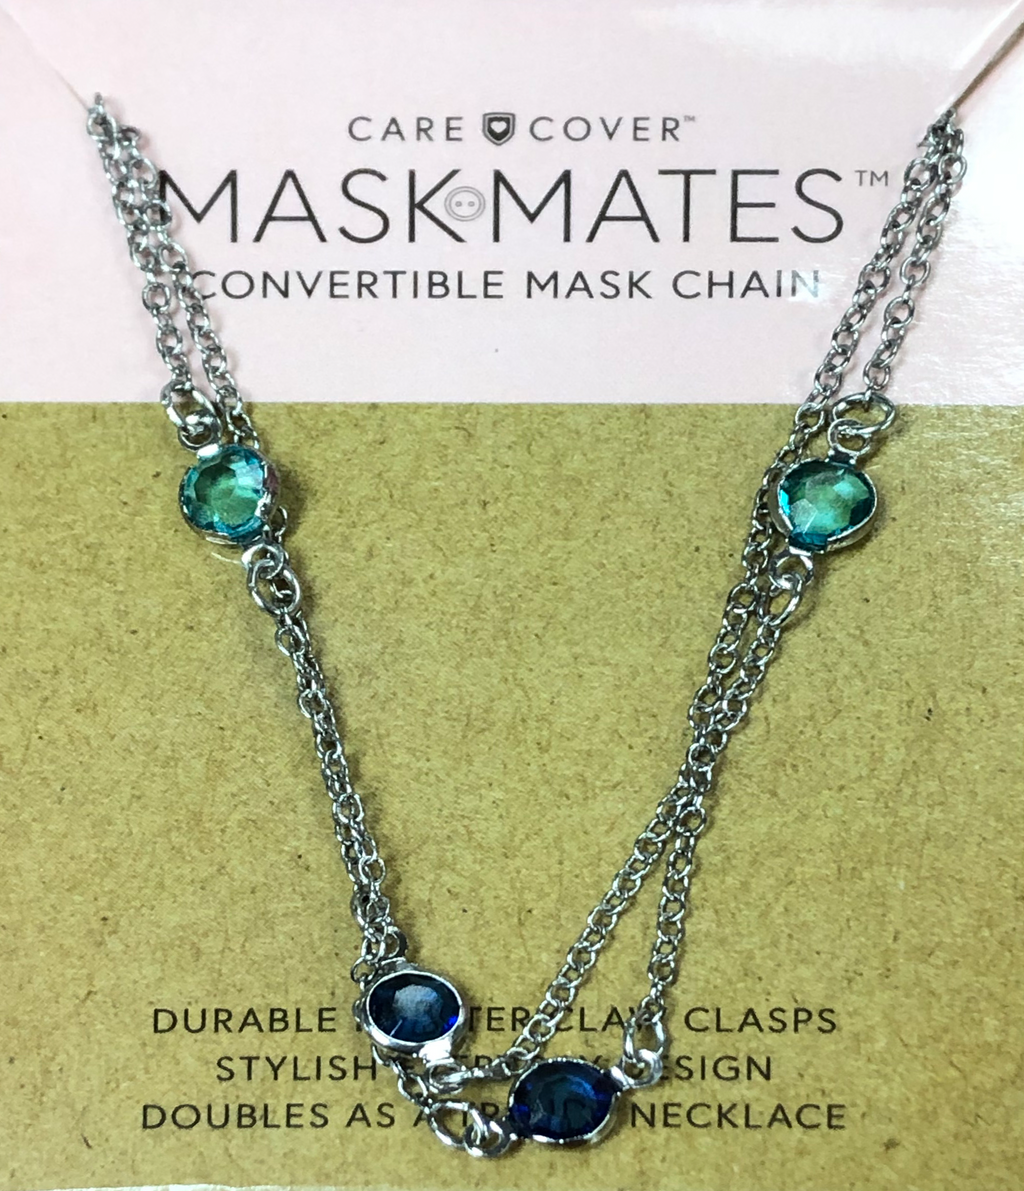 Mask Mates Convertible Mask Chain-Blue Gems